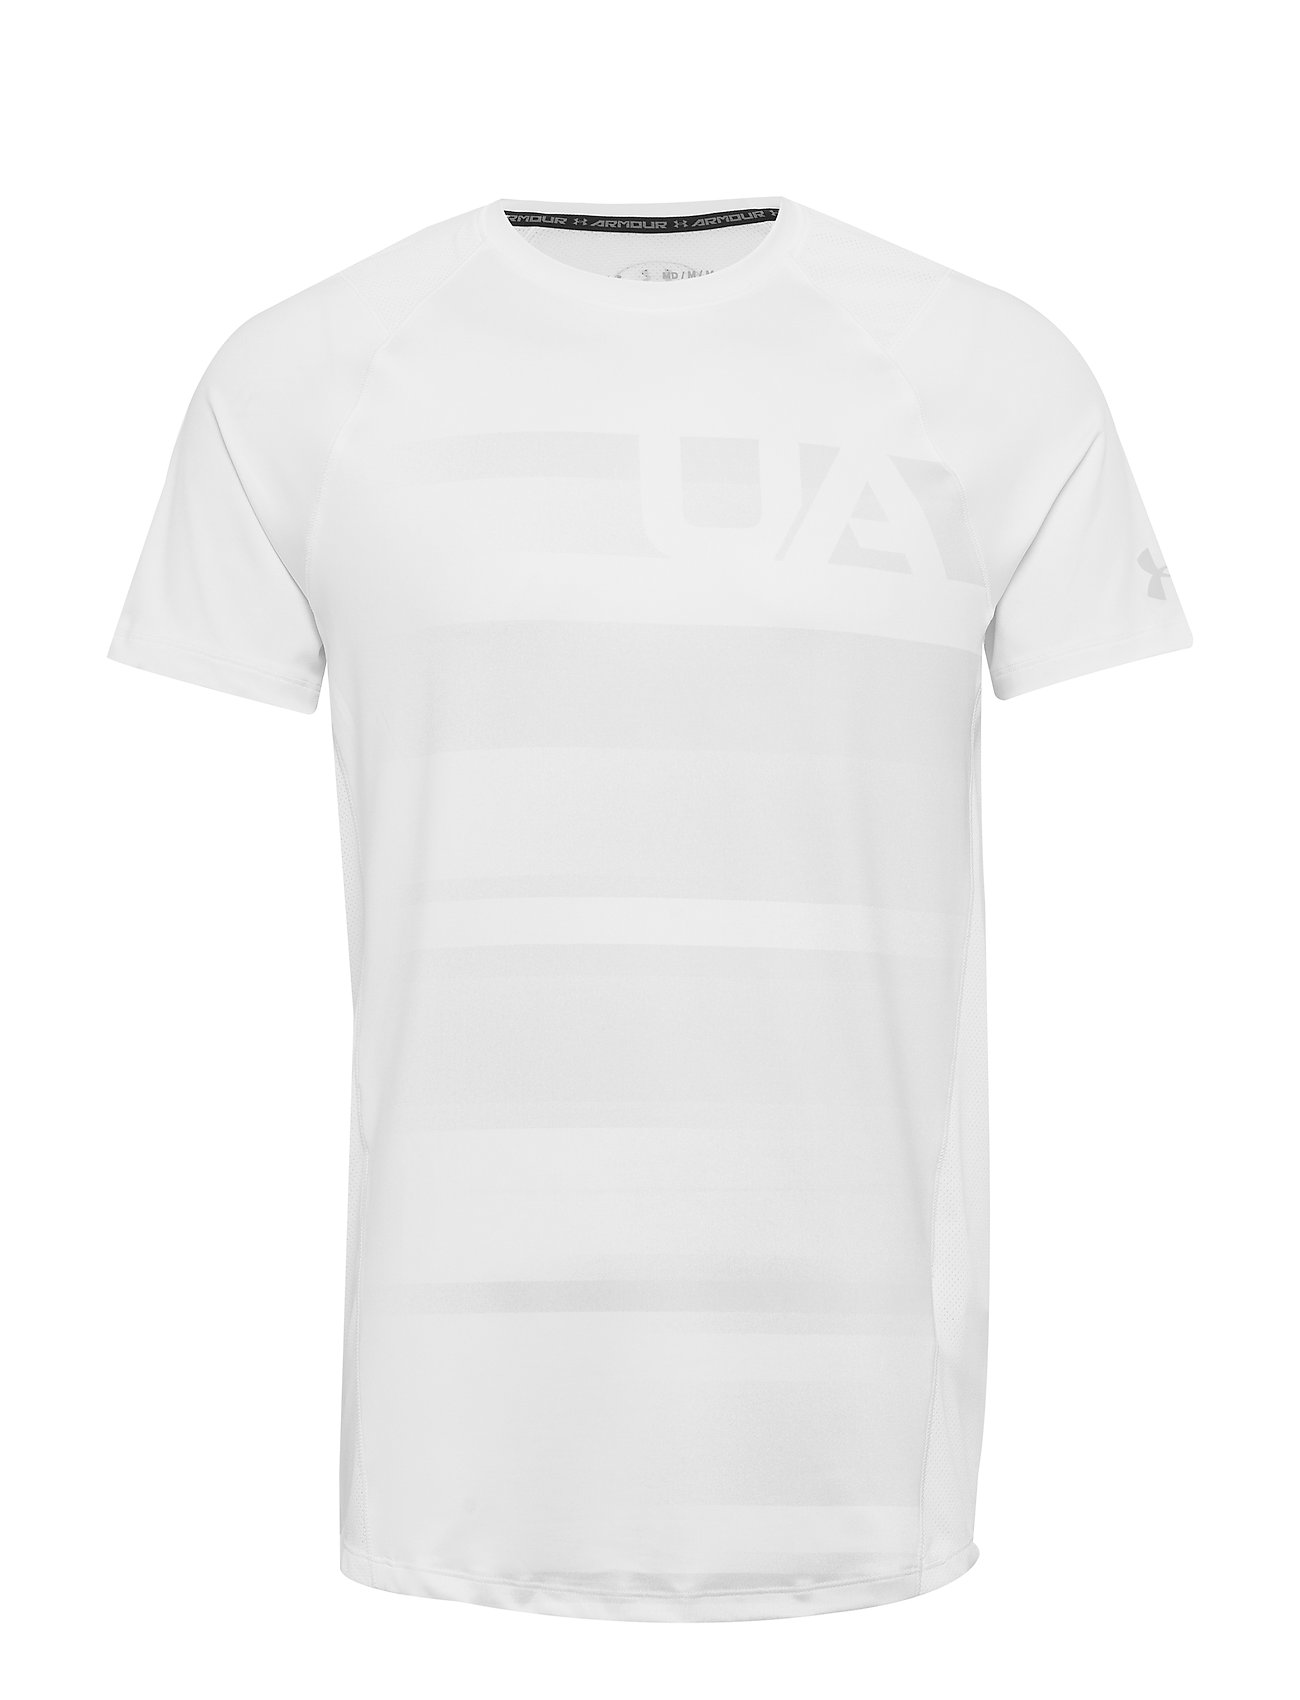 Under Armour MK1 SS UA SUBLIMATED - WHITE